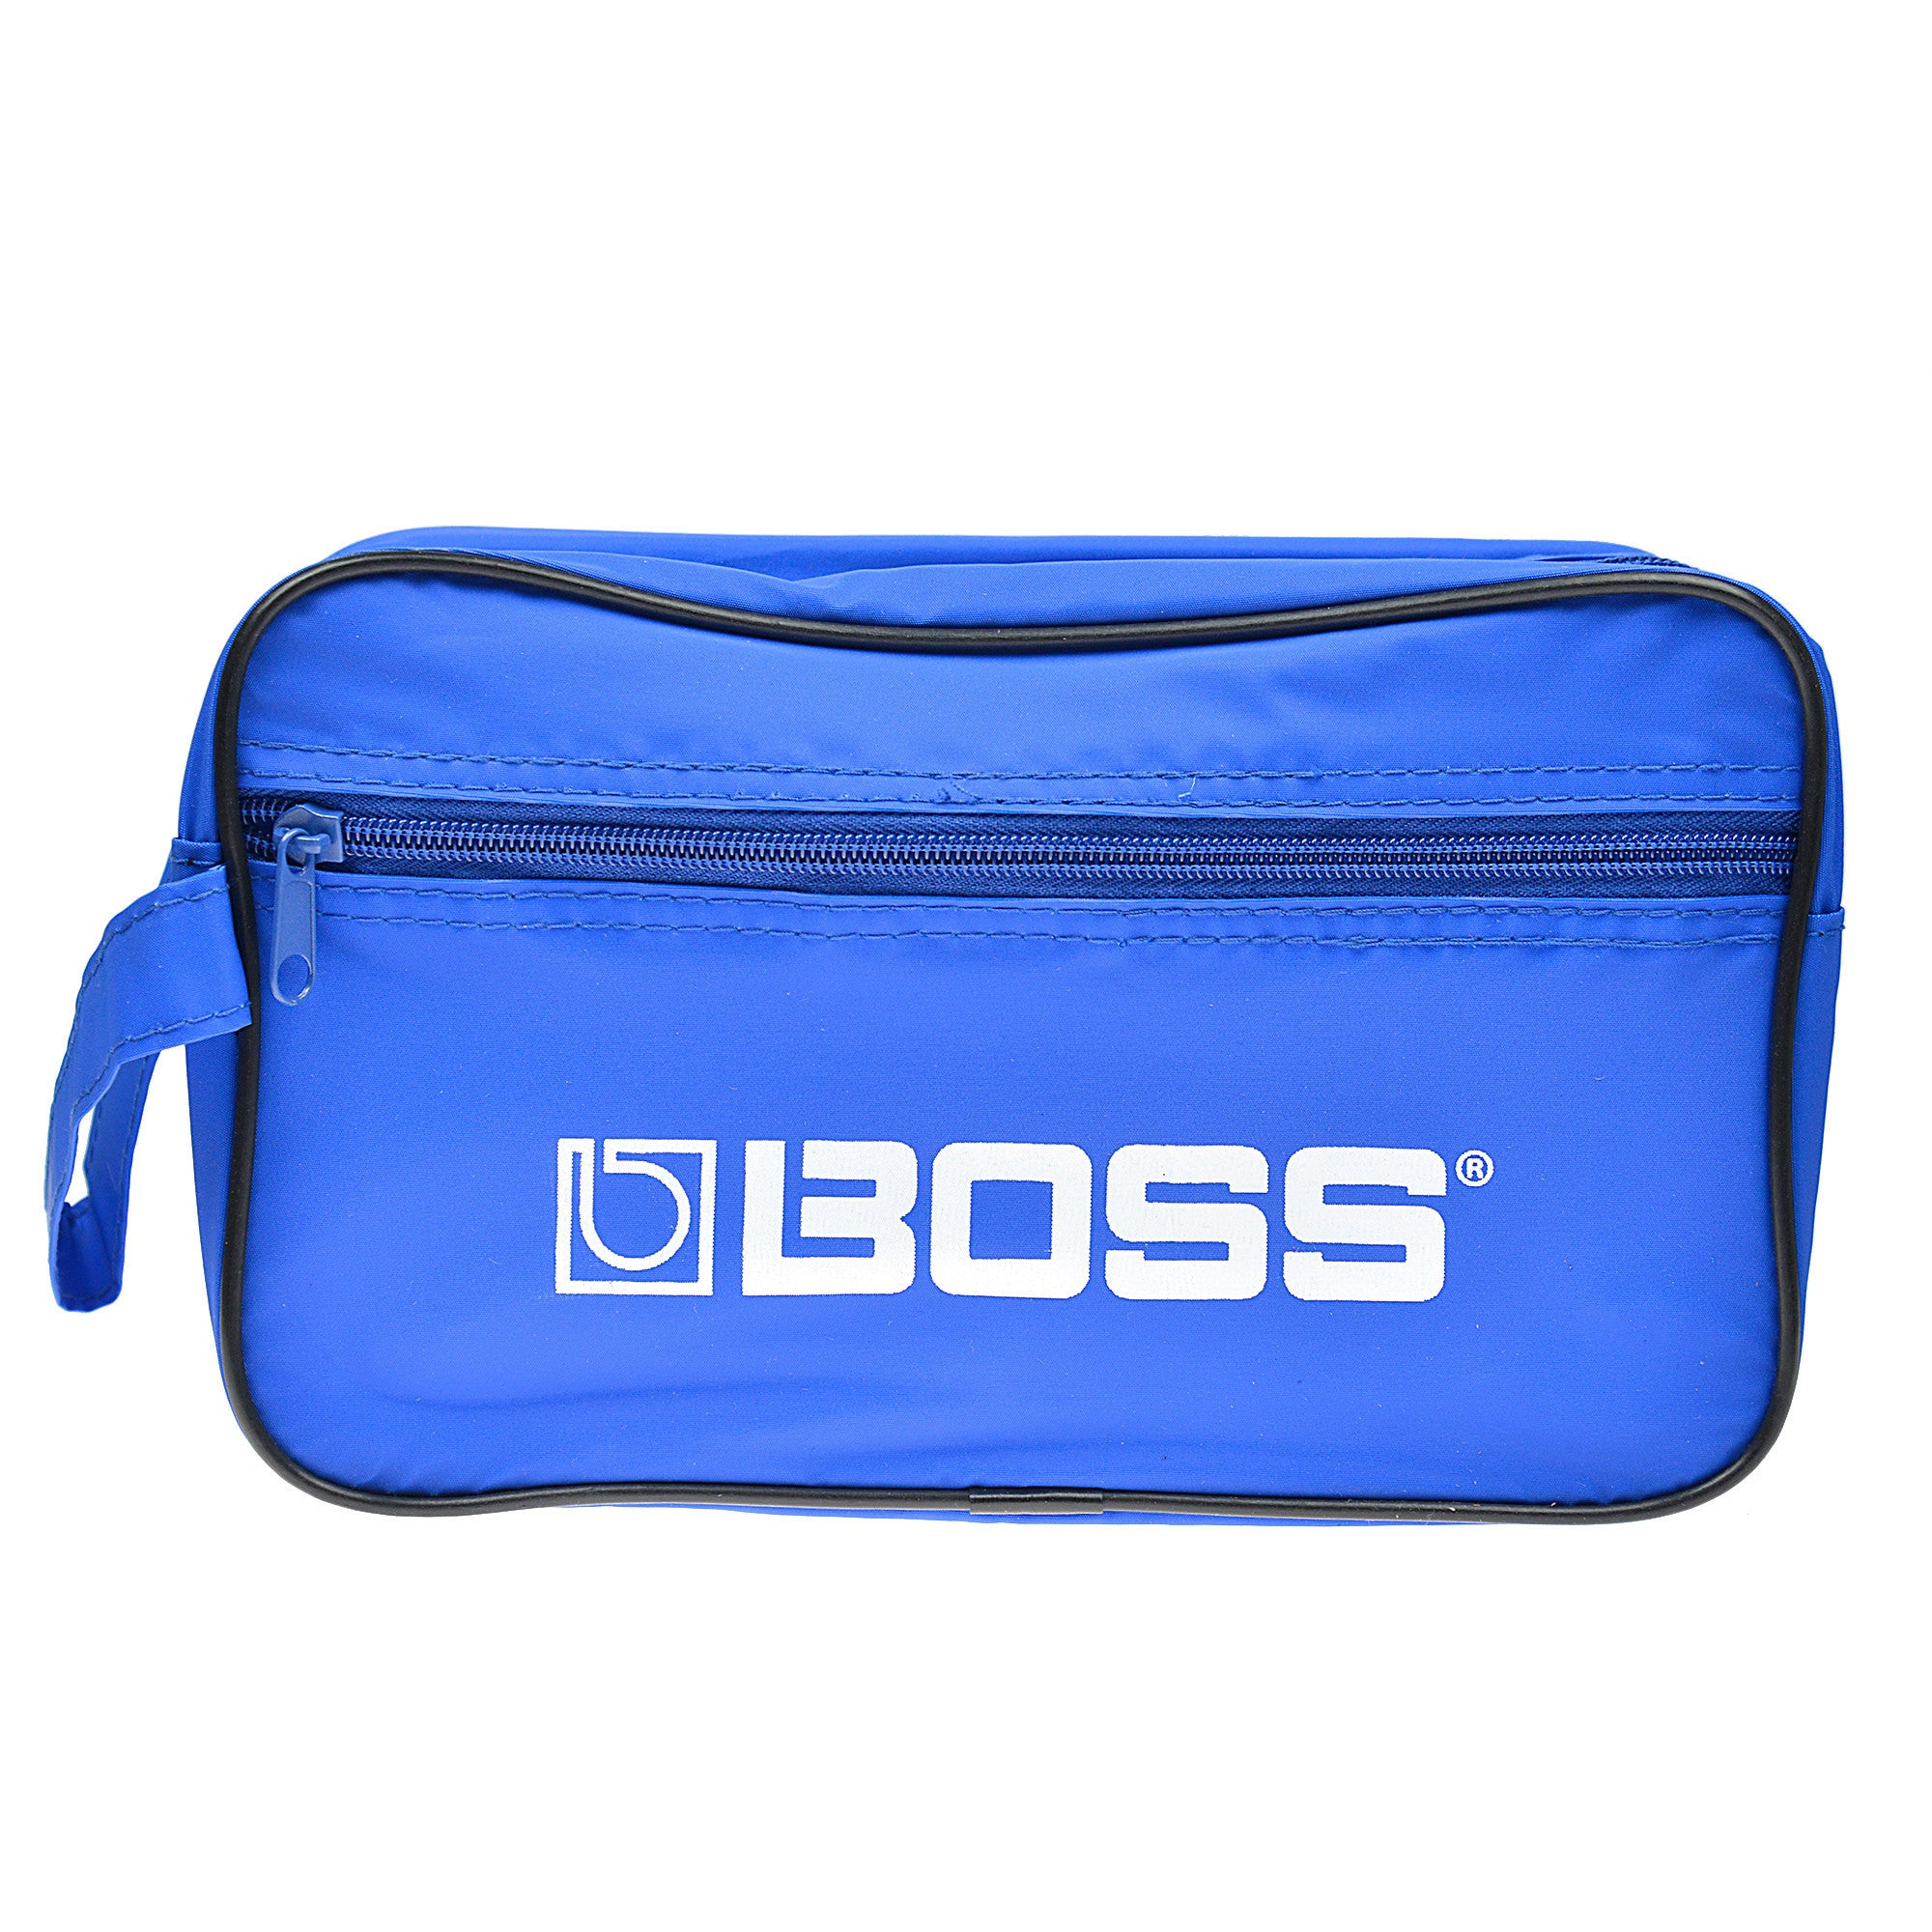 Mail boss discount coupon